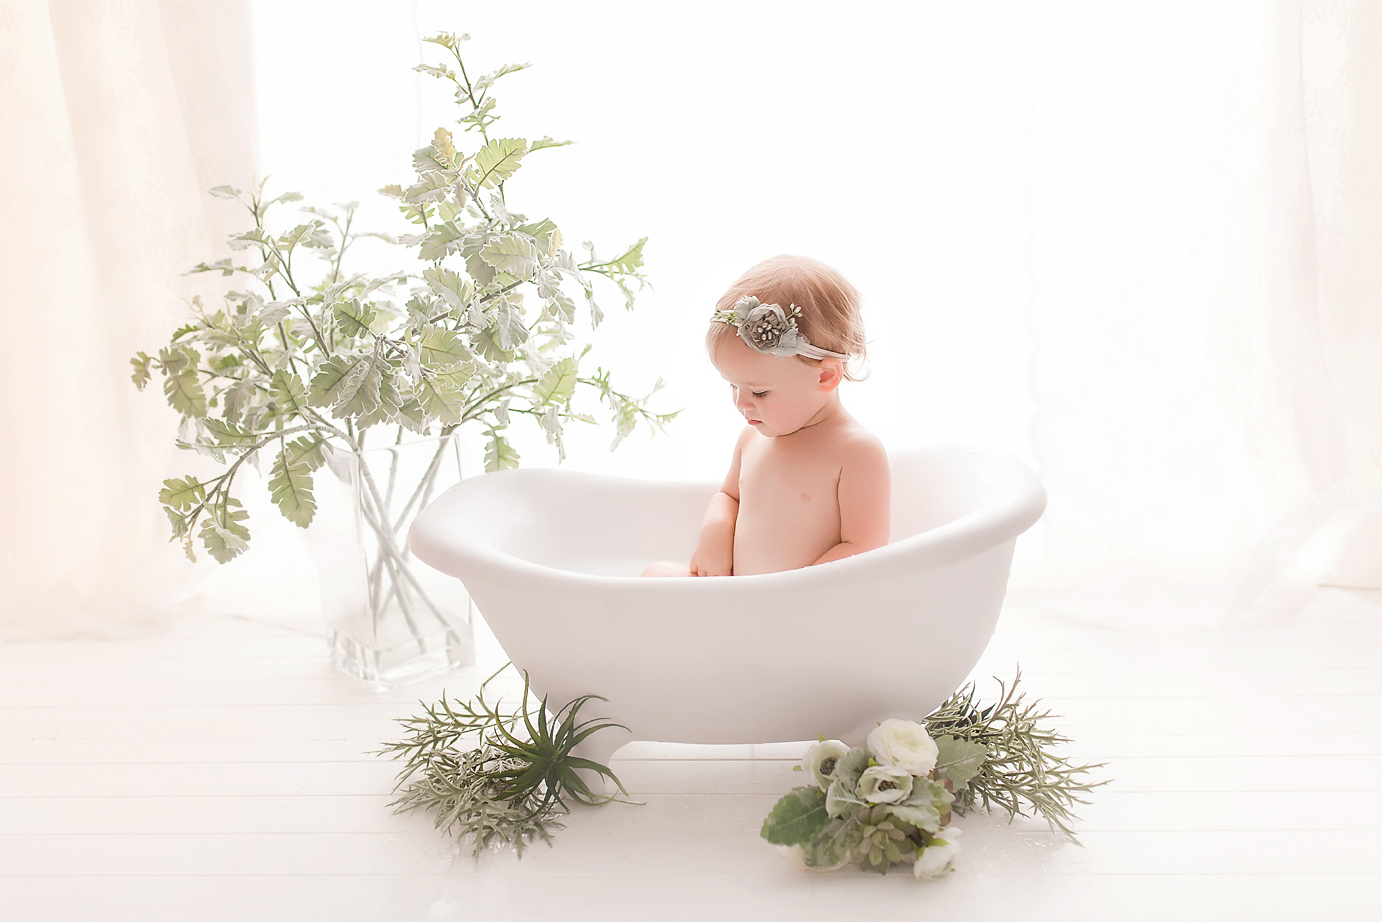 orange-county-baby-photography-studio-bath-time-succulents-organic-first-birthday-irvine-newport-beach.jpg